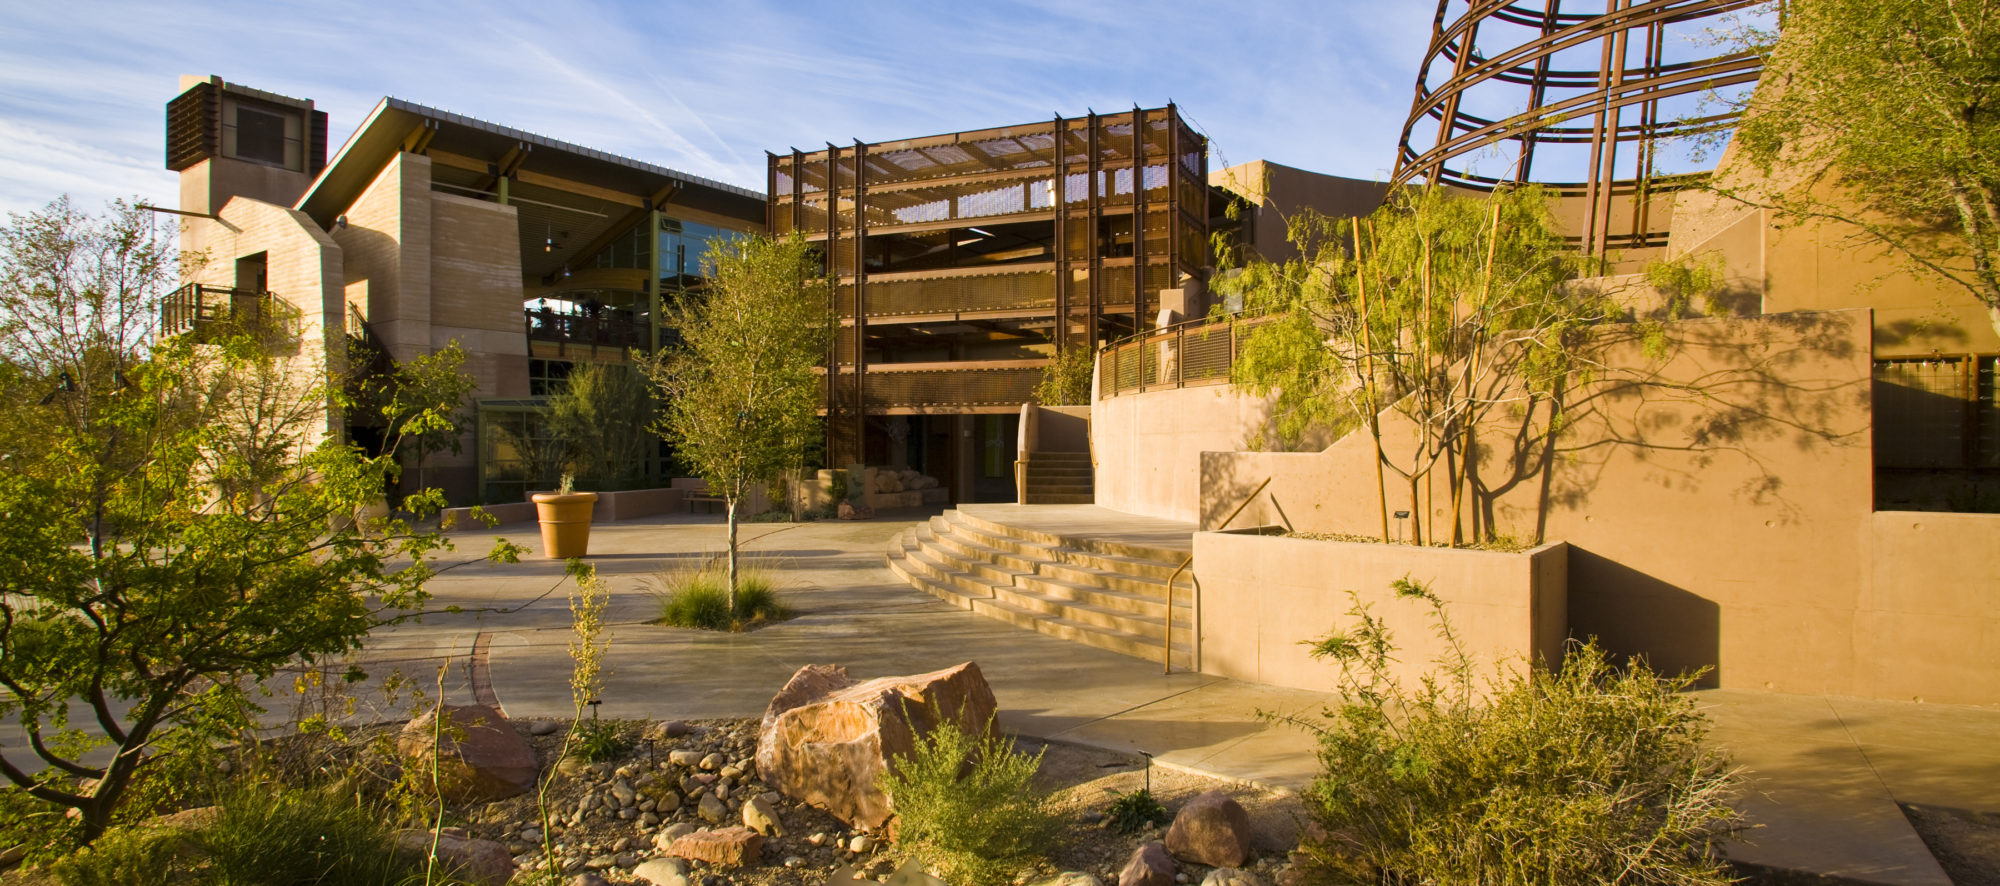 The entrance to the Desert Living Center at the Springs Preserve, Las Vegas, NV, designed by LGA Architecture.